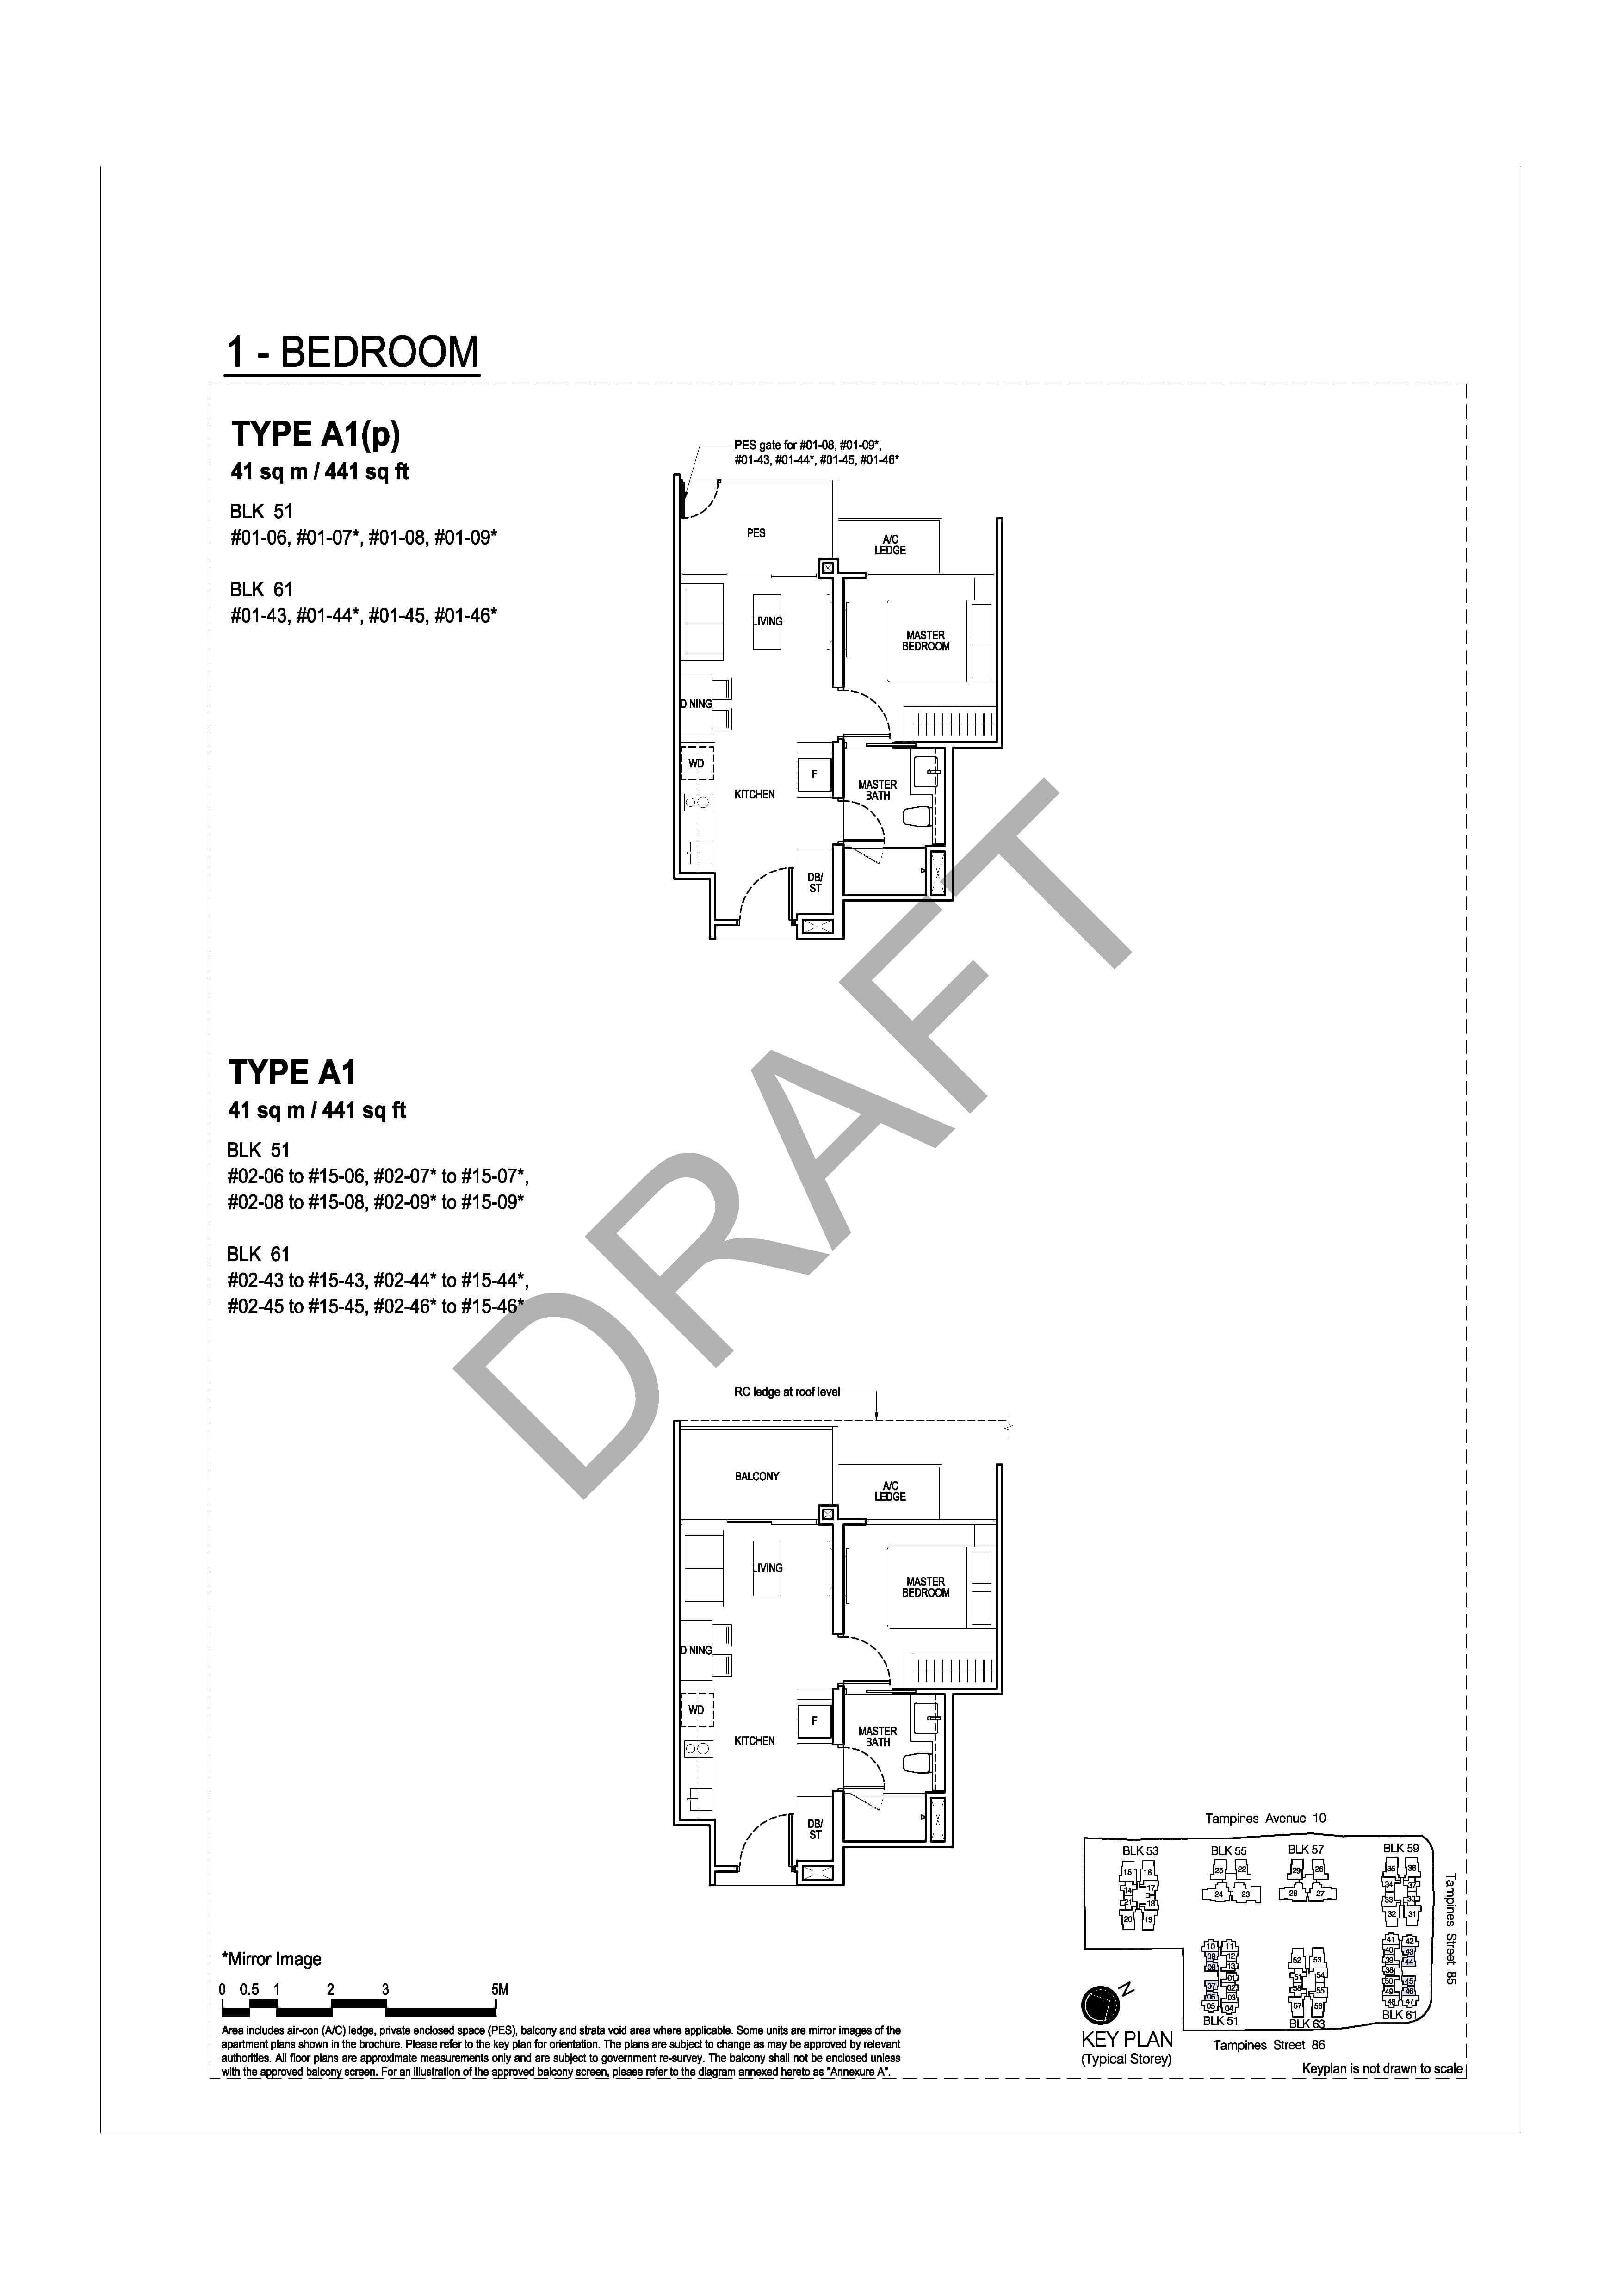 The Tapestry Floor Plans - View Unit Distribution for All Bedroom ...